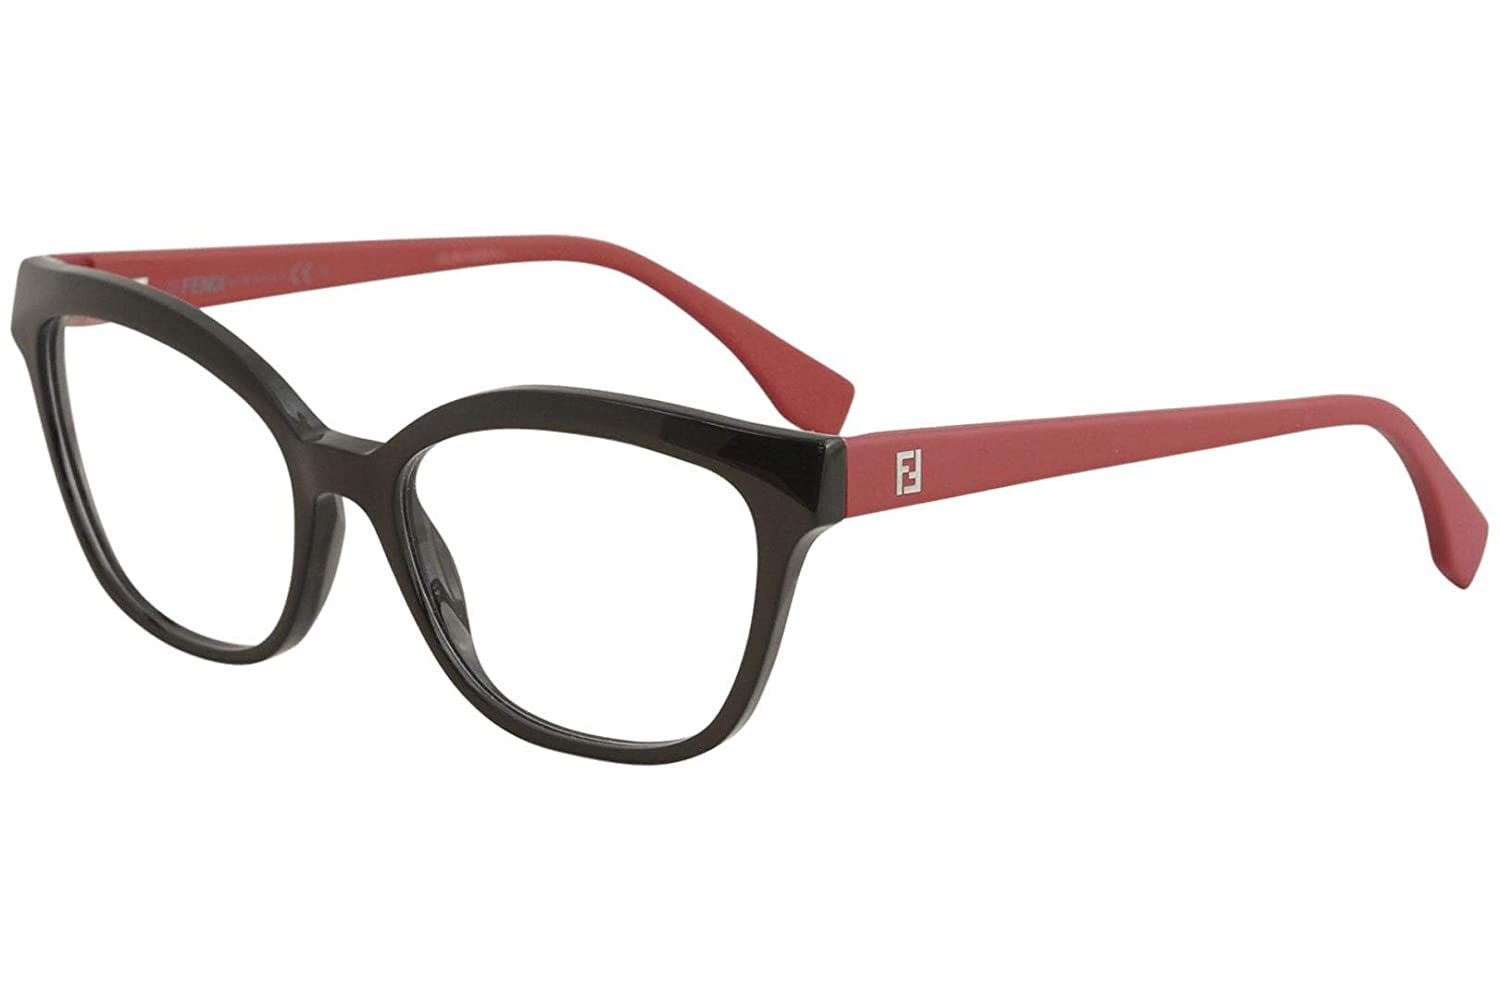 c71e3be6e9b7 Amazon.com  FENDI Women s FF 0044 MGT Brown Clear Cat eye Eyeglasses 54mm   Clothing